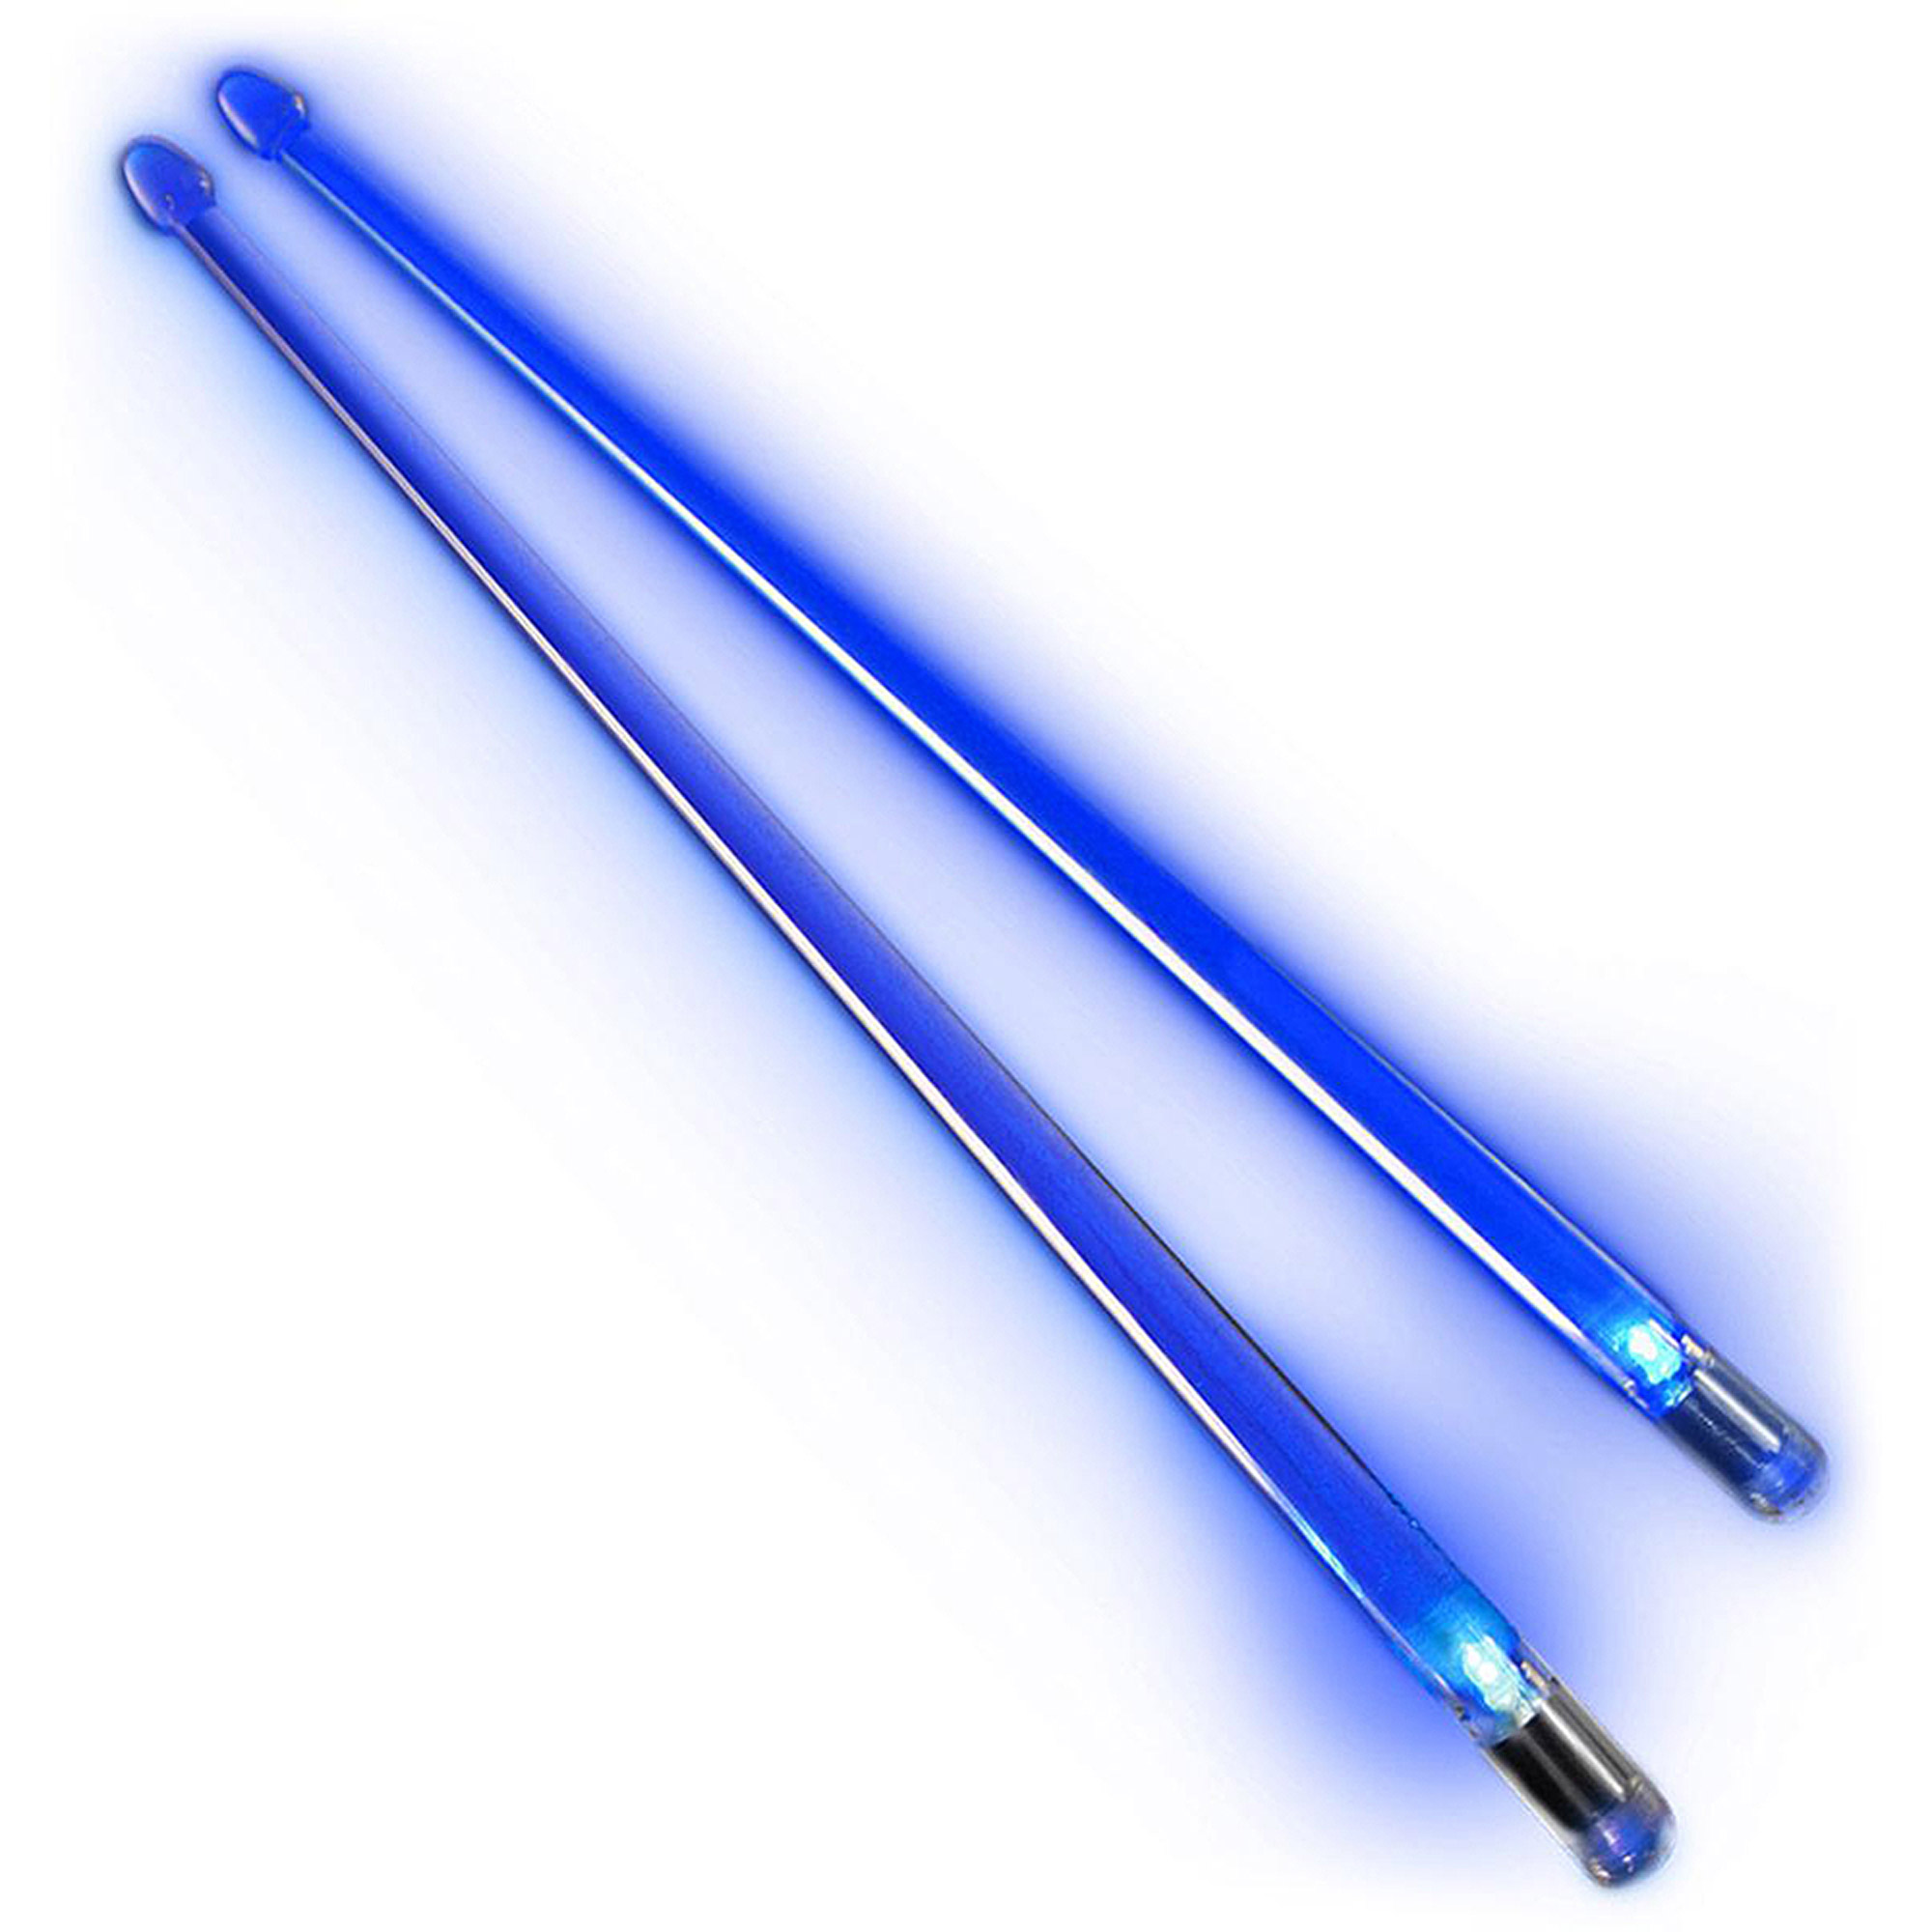 Firestix Light Up Drumsticks, Blue